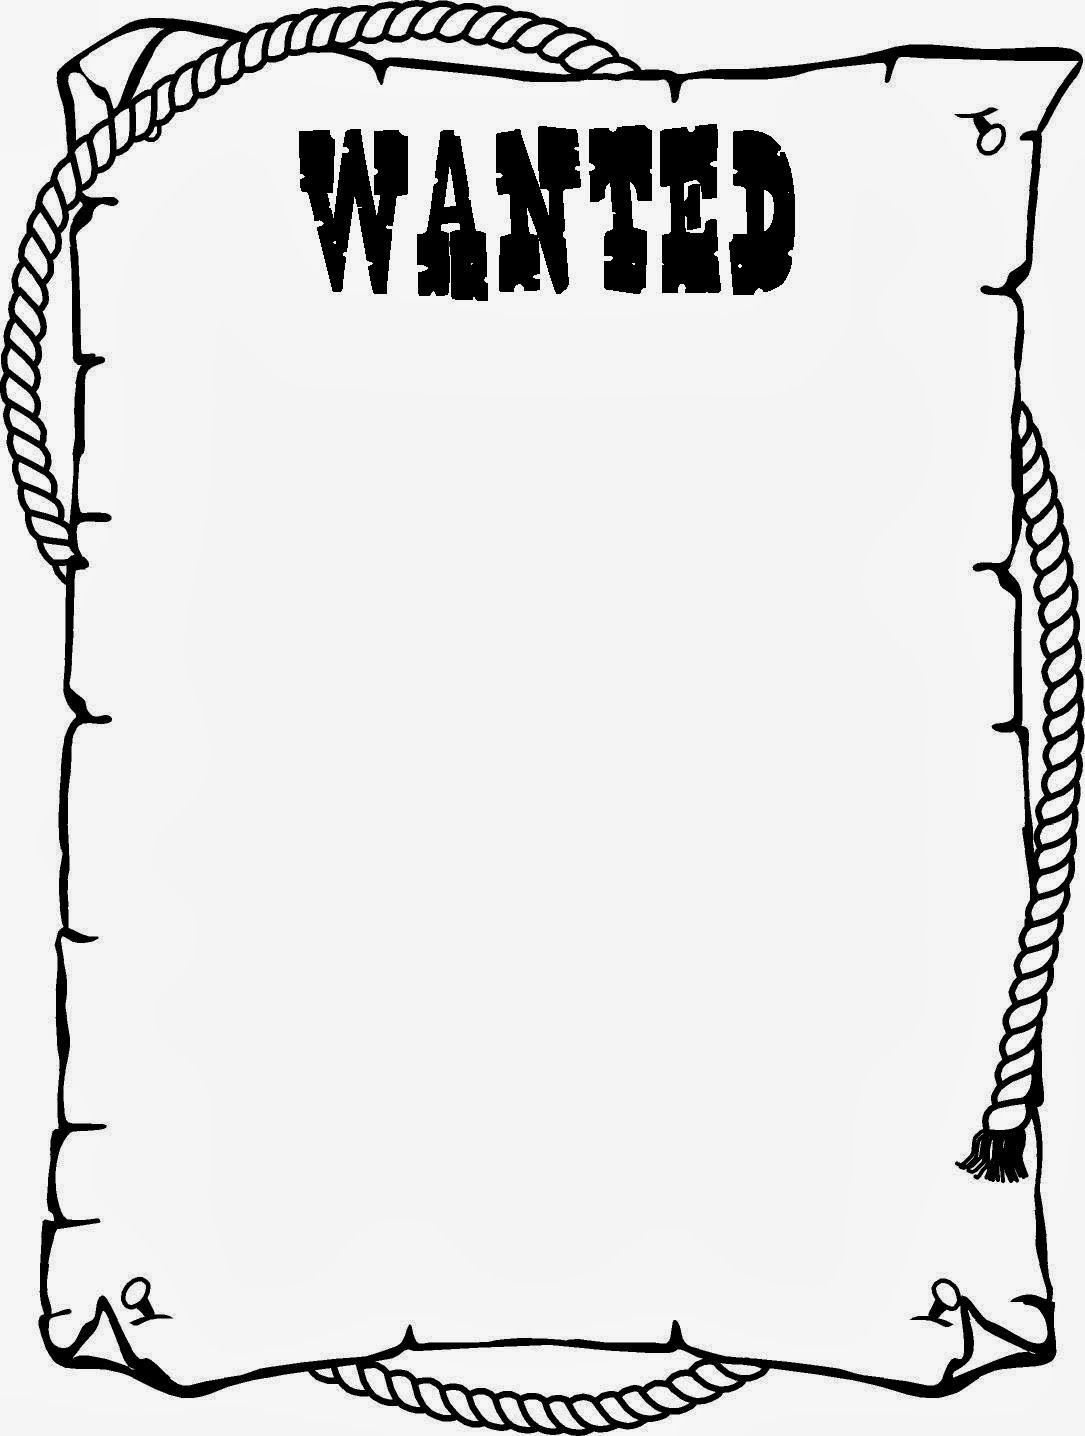 Wanted Poster – Template for a Wanted Poster